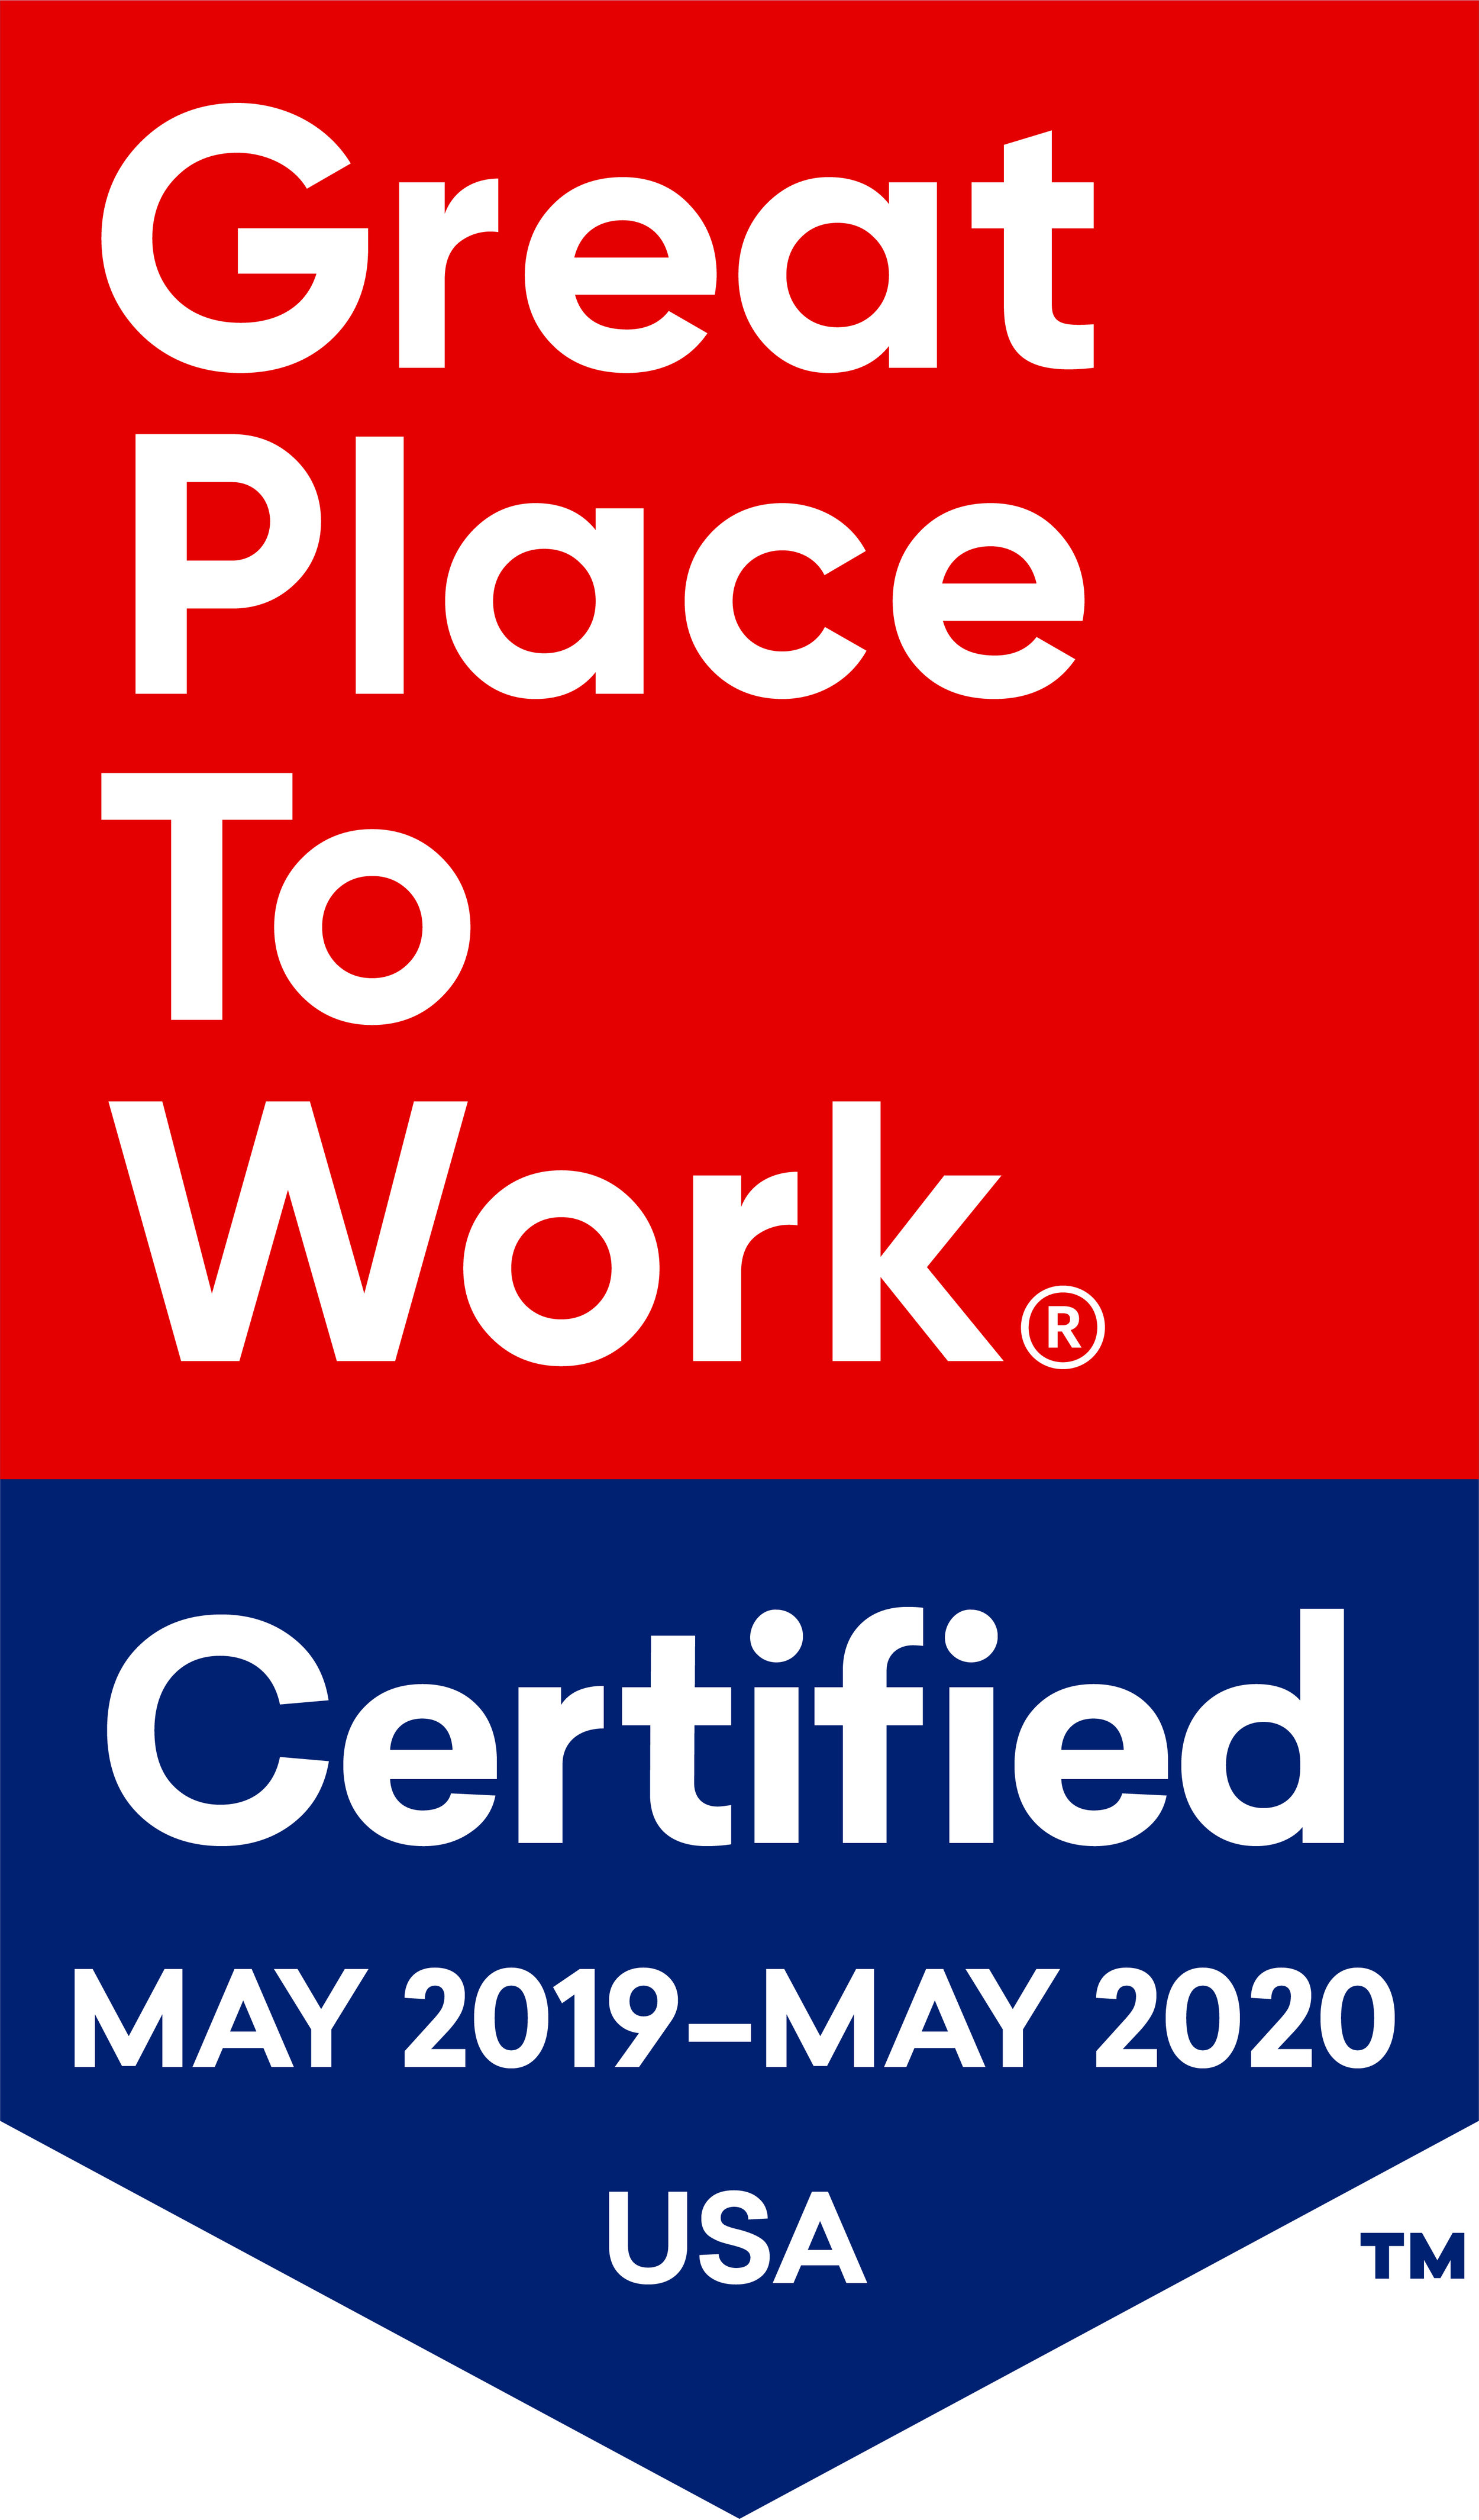 Great Place to Work Badge.jpg